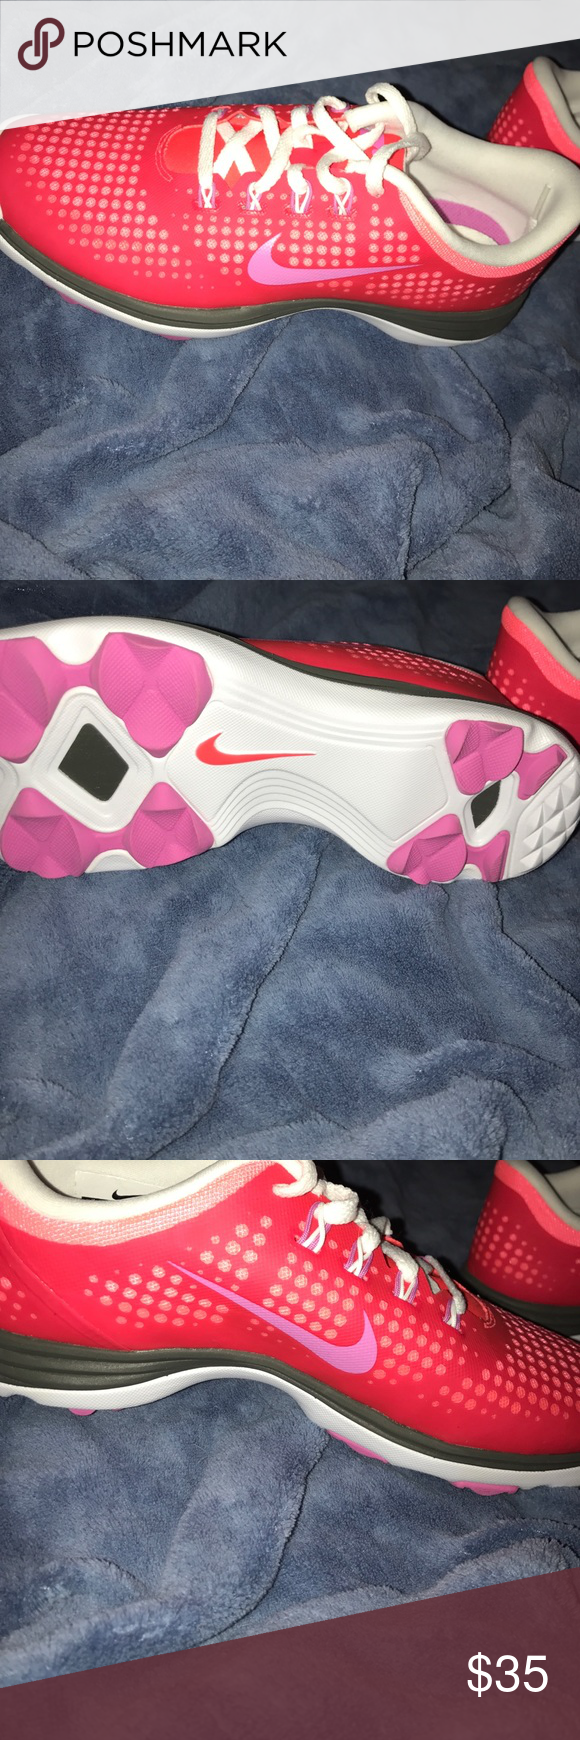 Nike shoes Never worn Nike shoes can be used as casual shoes or cleats Nike Shoes Athletic Shoes